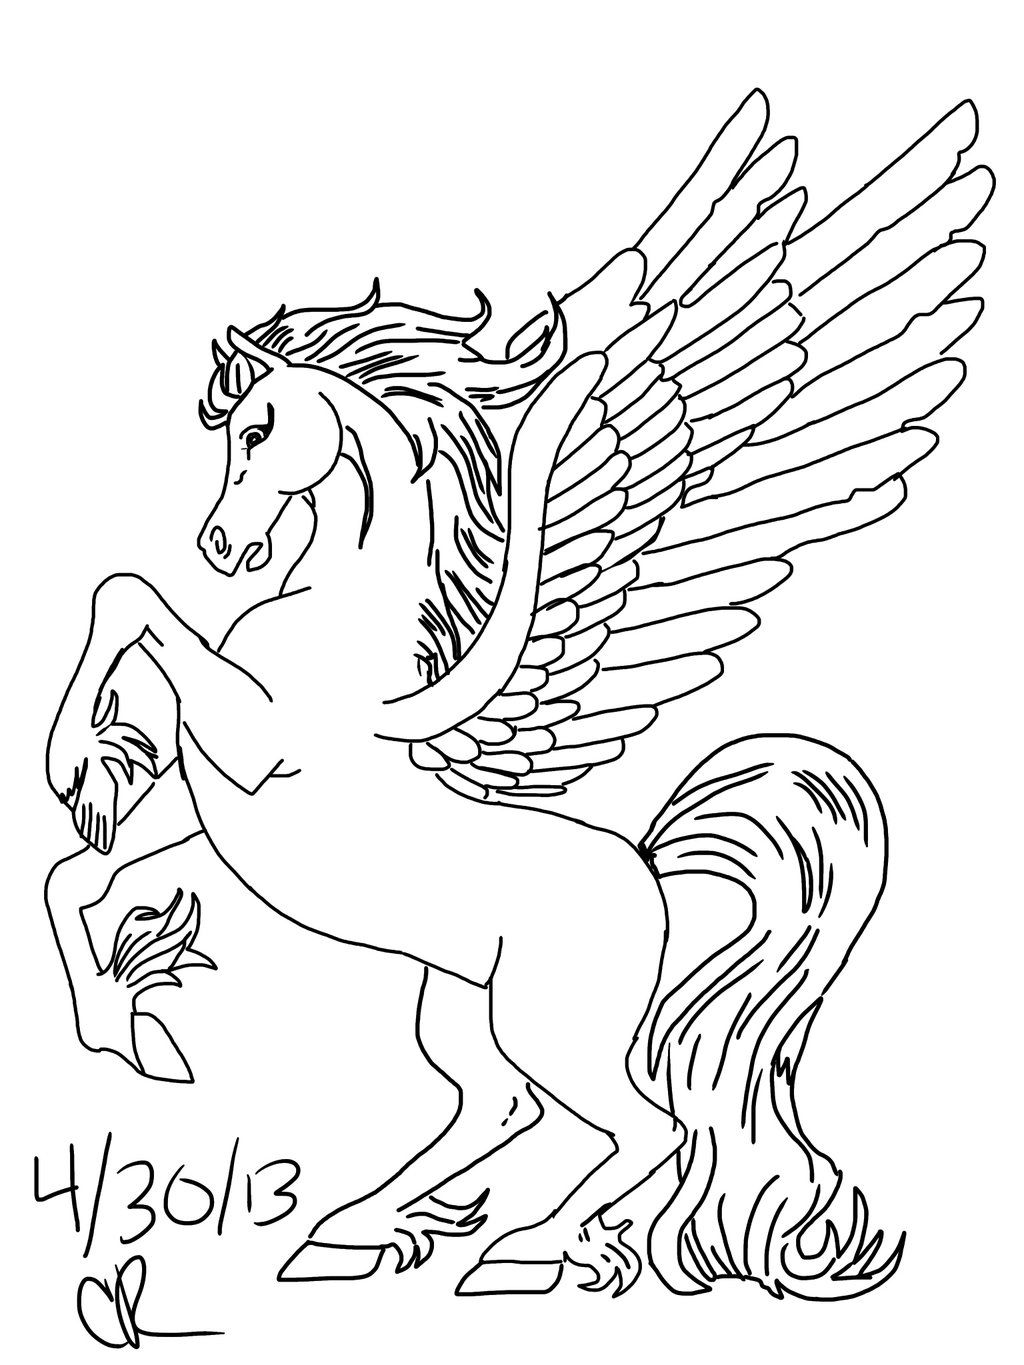 Pegasus By Wolfiethealpha Deviantart Com On Deviantart Unicorn